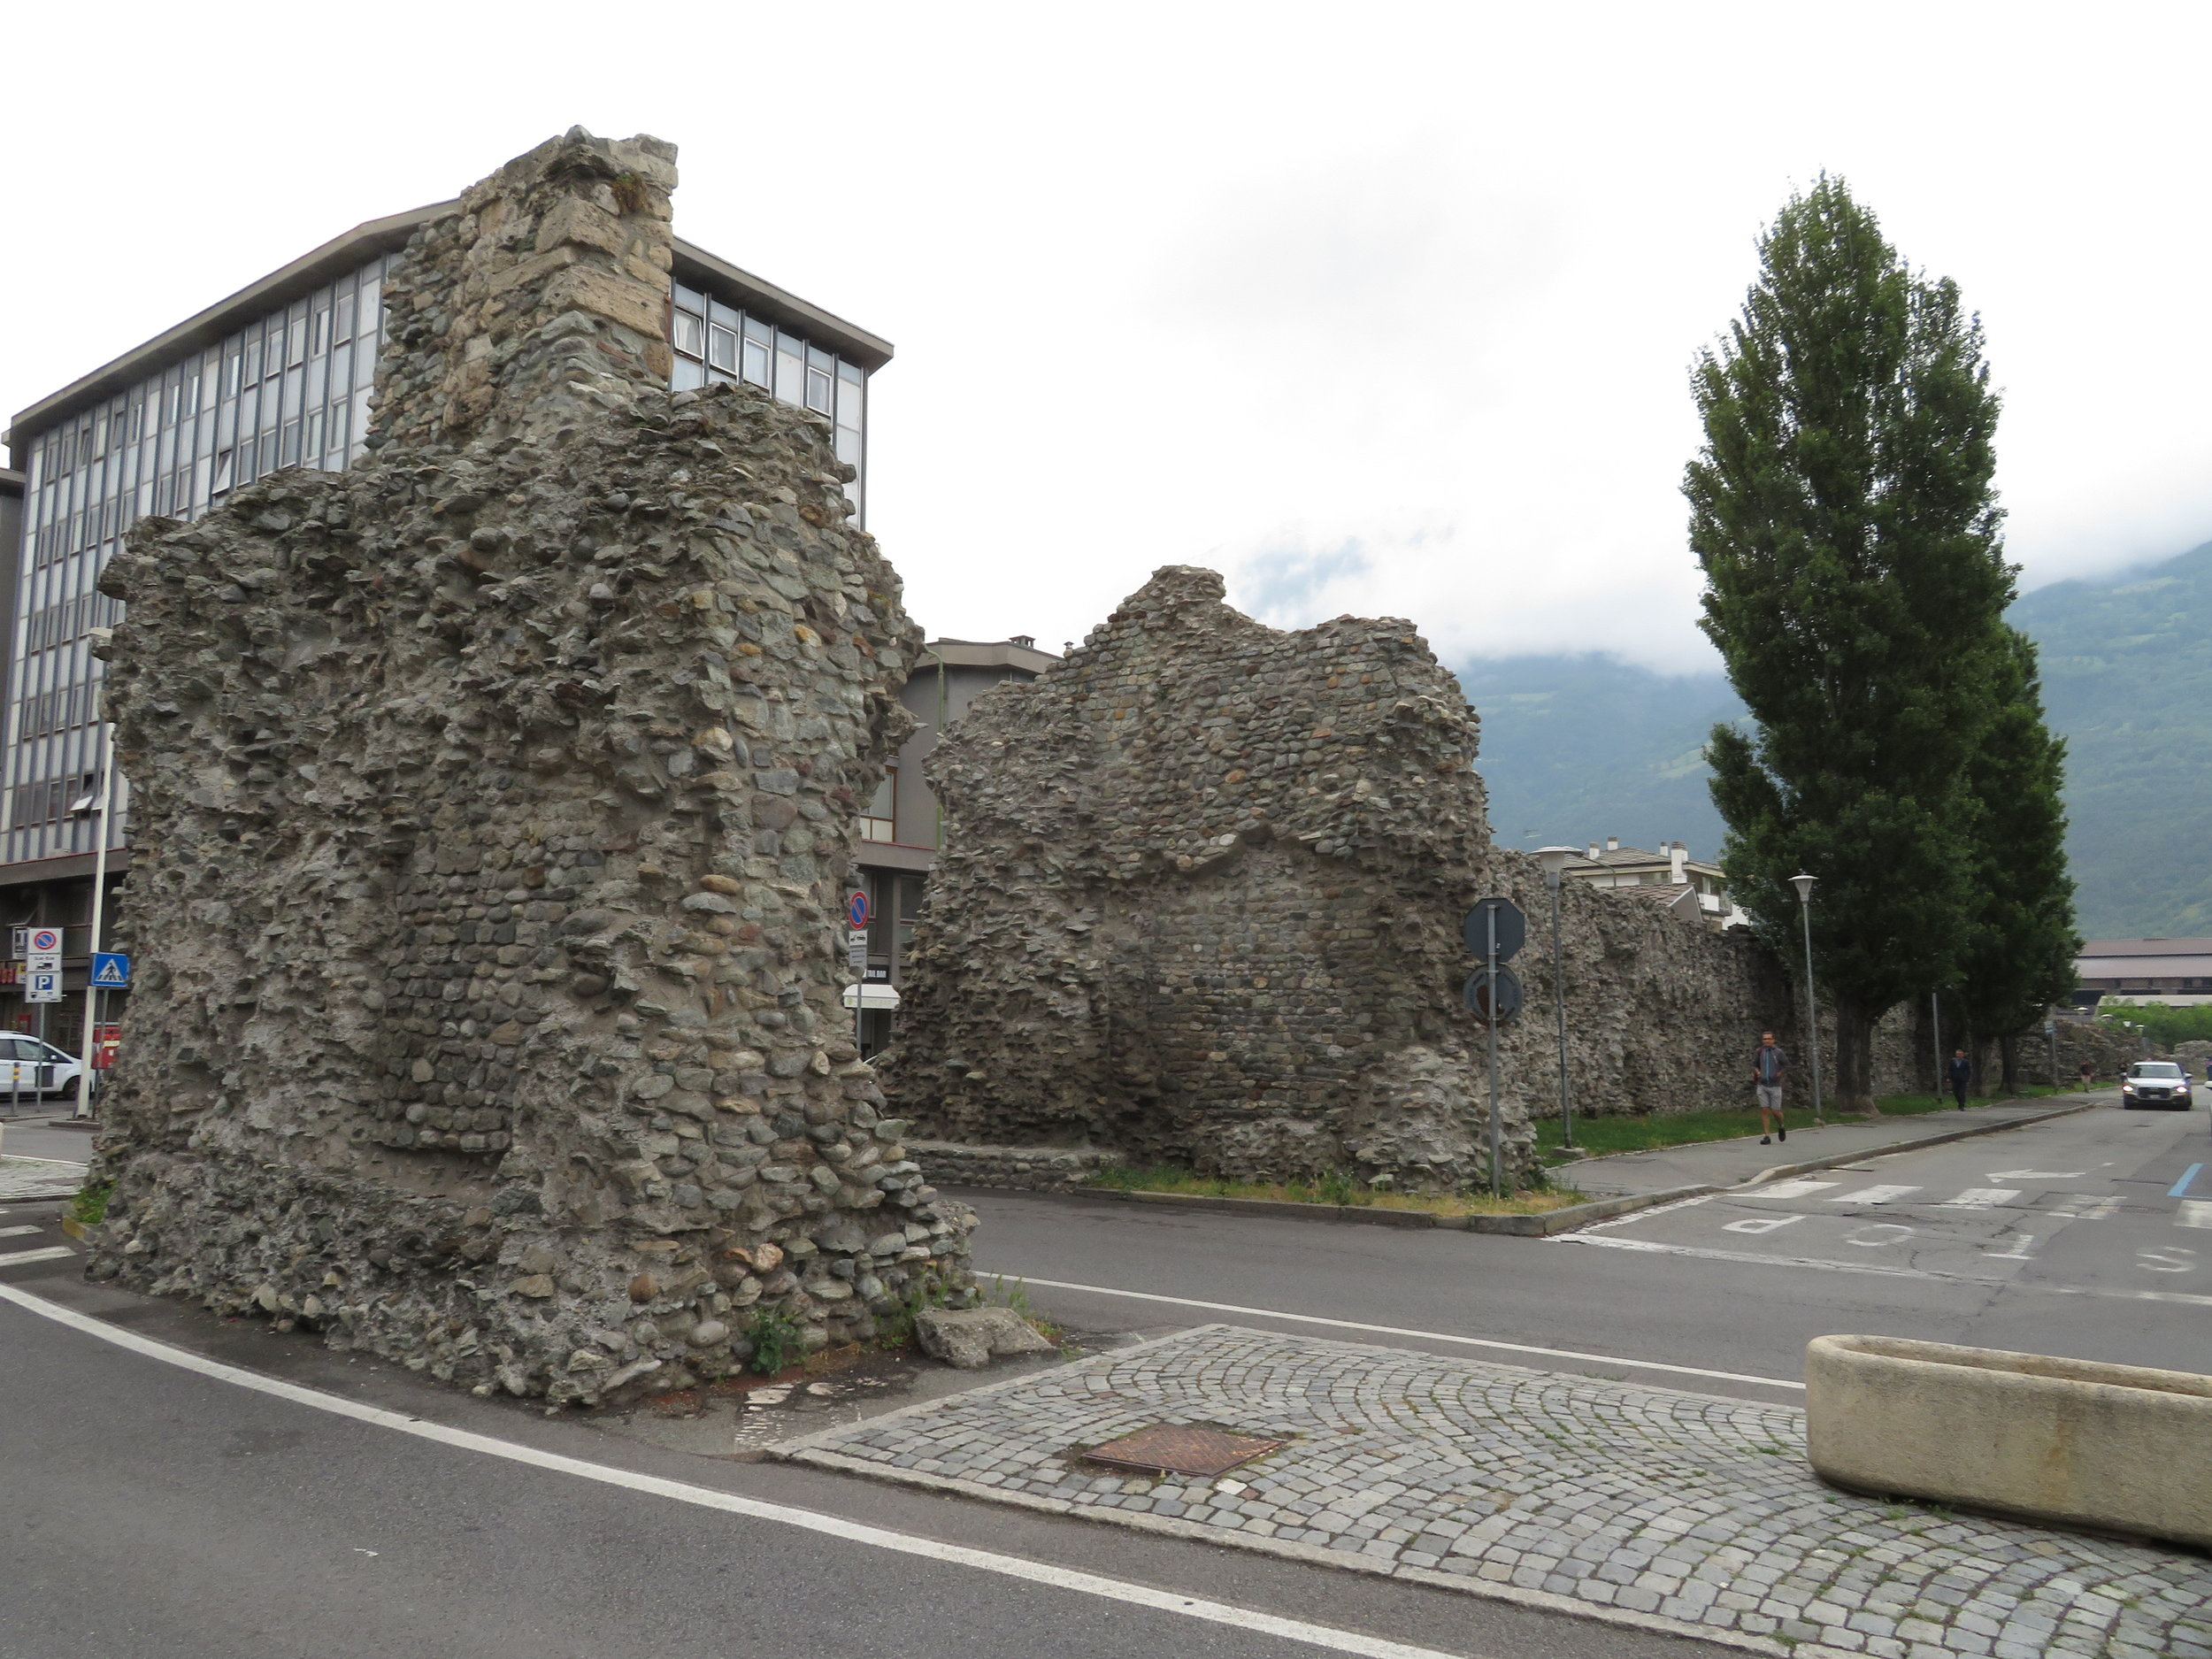 Ruins of a Roman wall right in the middle of town. Traffic diverts around it or passes through the middle.